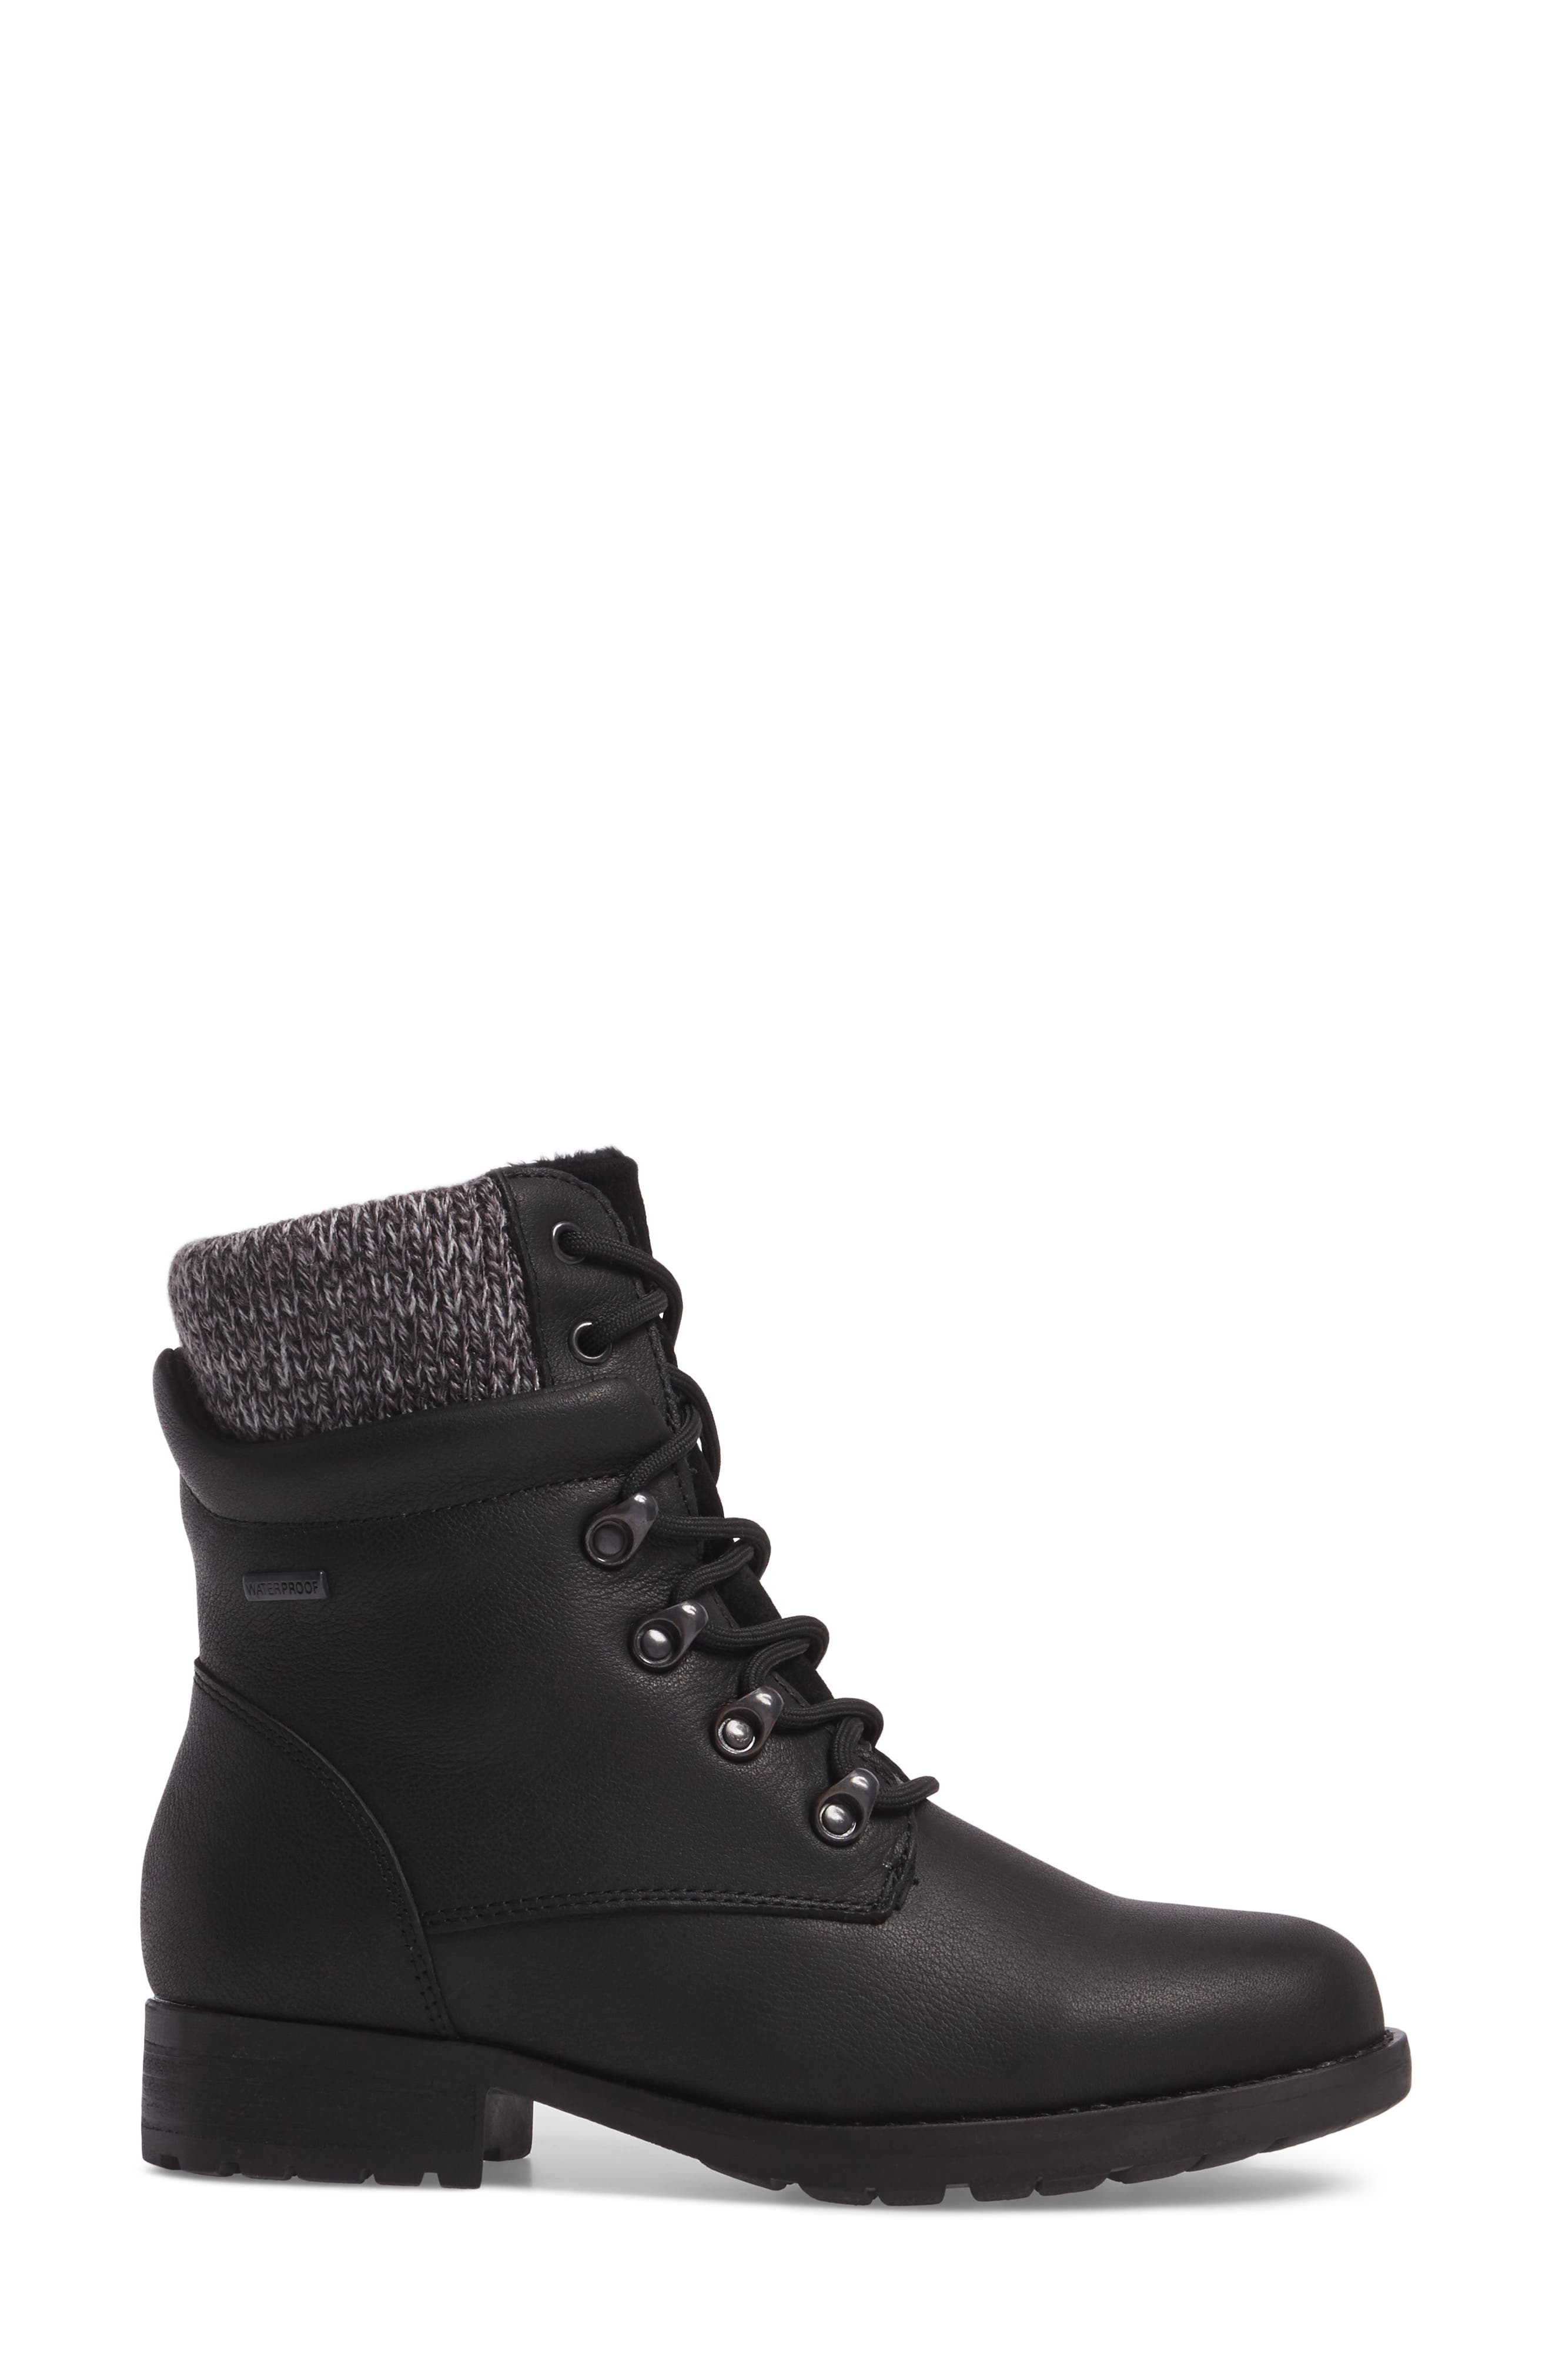 Derry Waterproof Boot,                             Alternate thumbnail 3, color,                             BLACK LEATHER